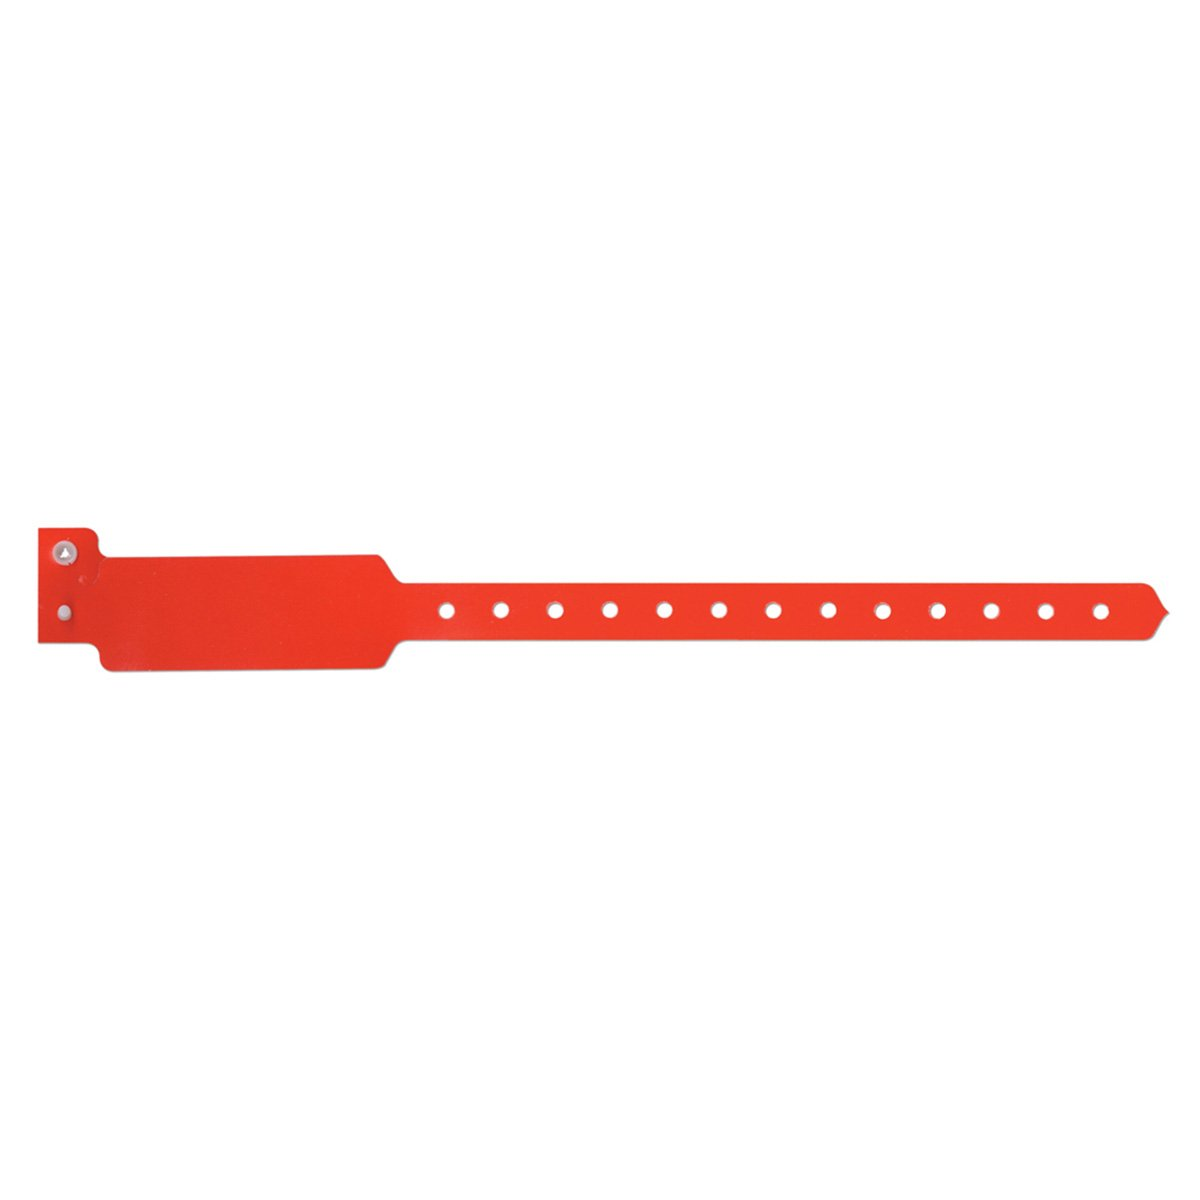 Sentry 5070-16-PDM Write-On Wristband, Poly Clasp Closure, 1'' x 10'', Pediatric, Red (Pack of 500)